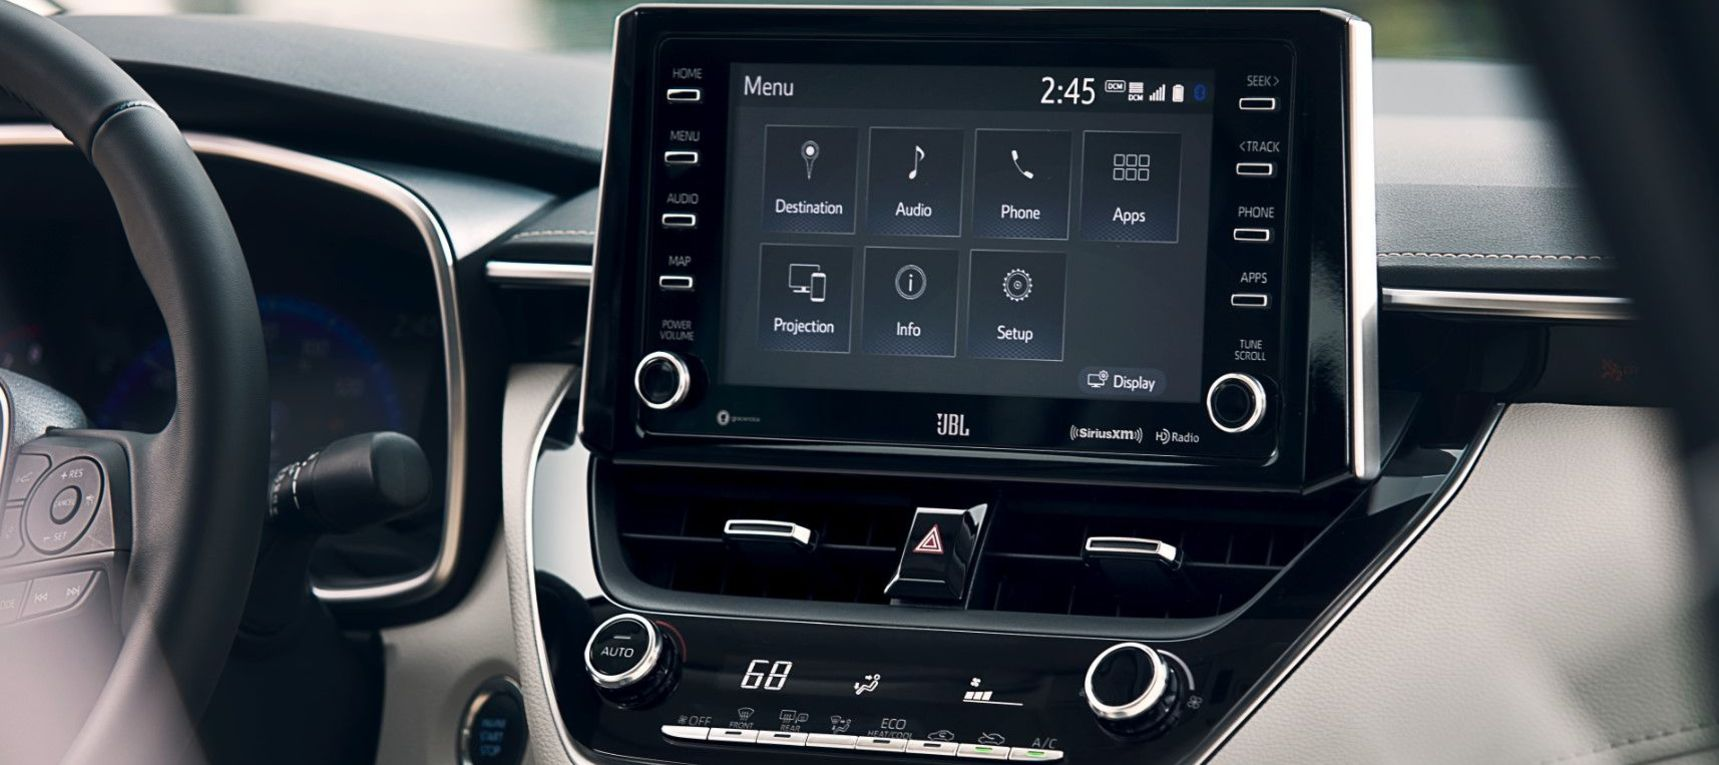 2020 Corolla Touchscreen